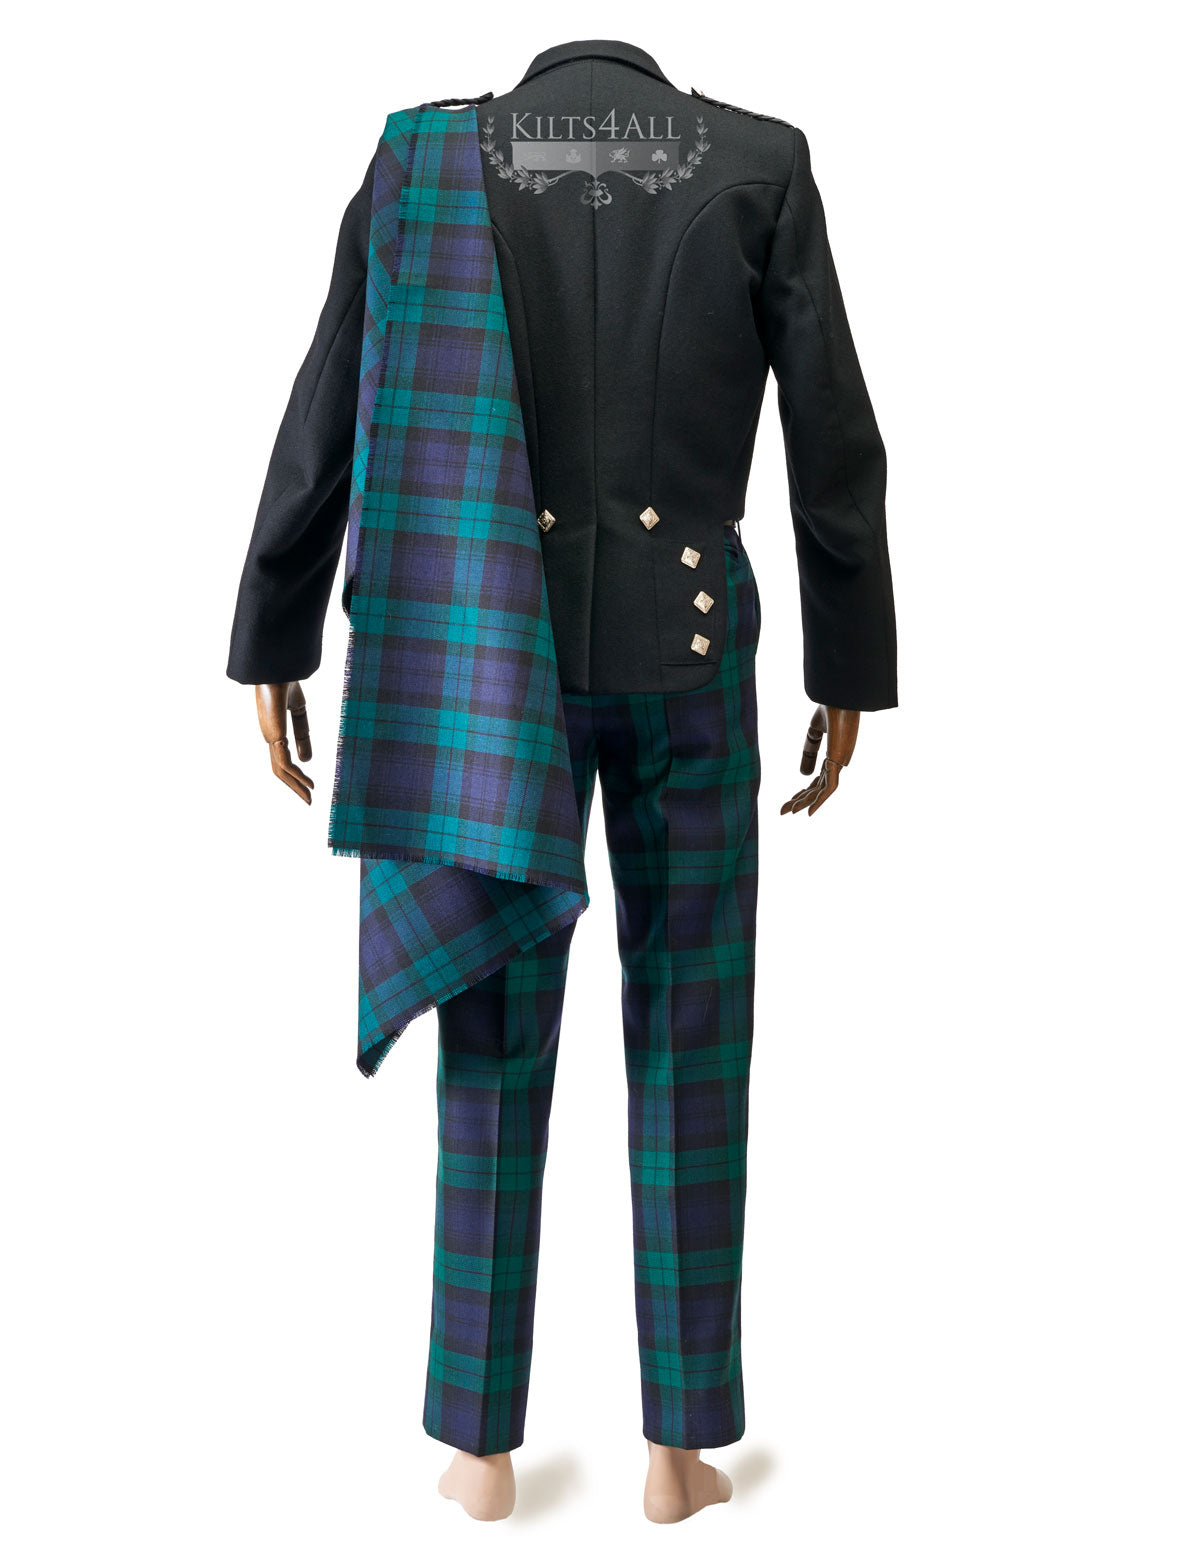 Mens Scottish Tartan Trews Outfit to Hire - Traditional Black Argyll Jacket & Waistcoat